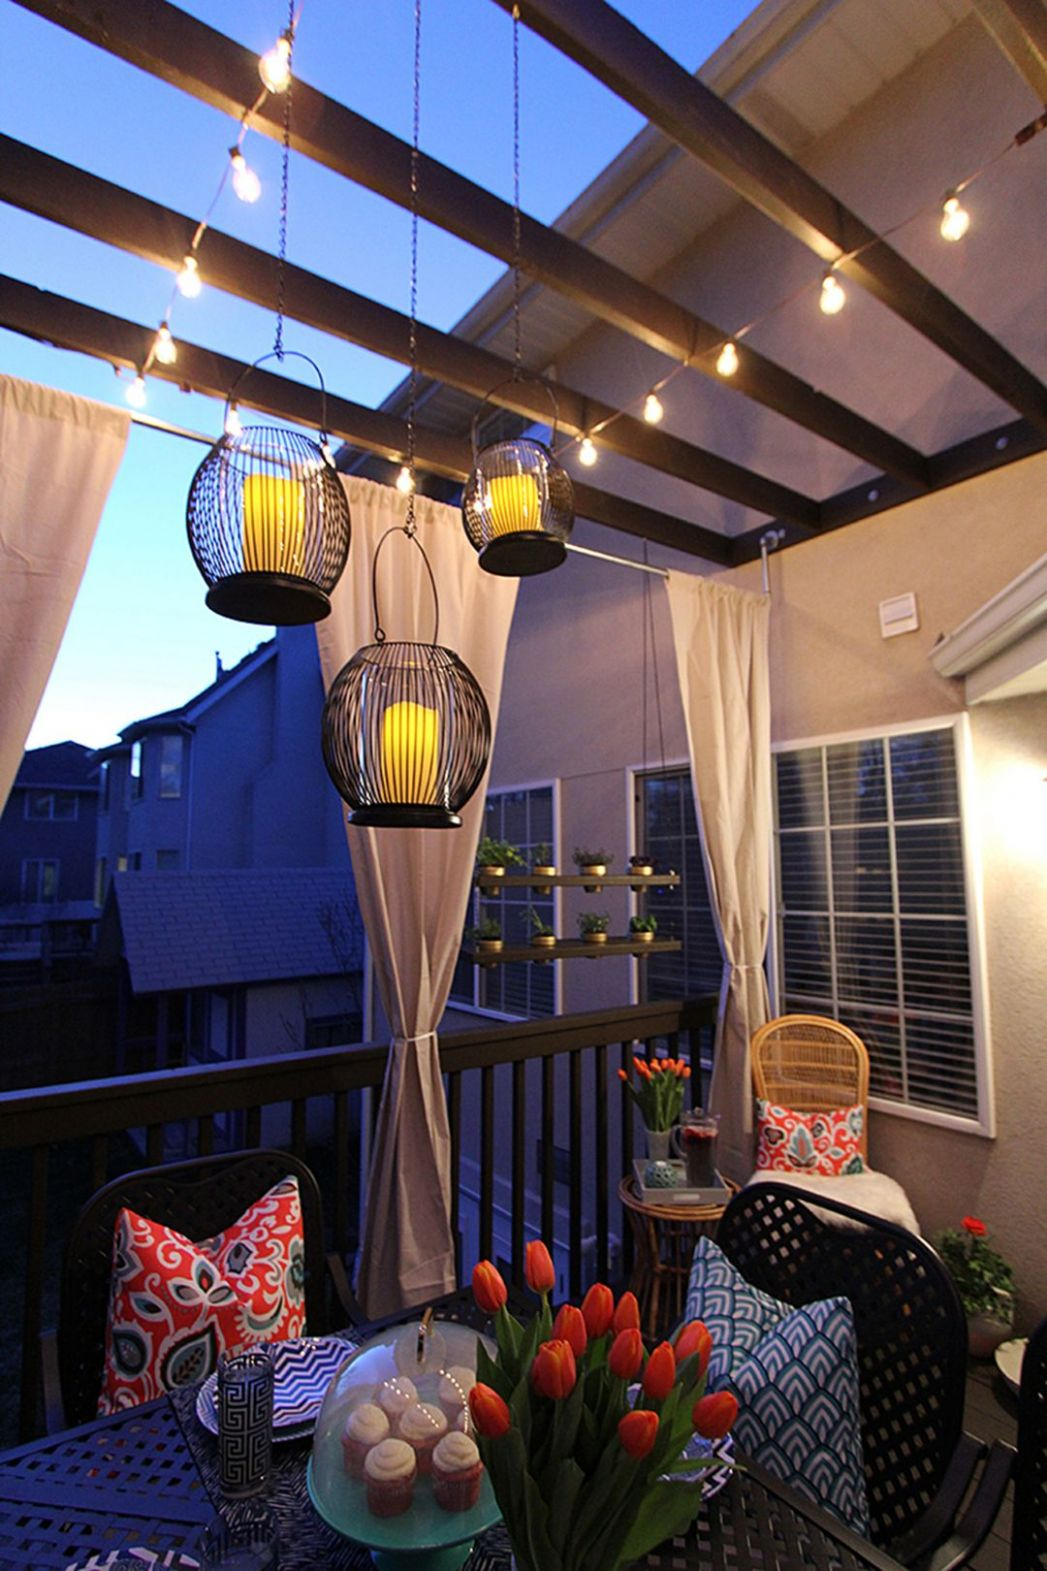 9 Beautiful Apartment Balcony Lighting Ideas for a Modern ..